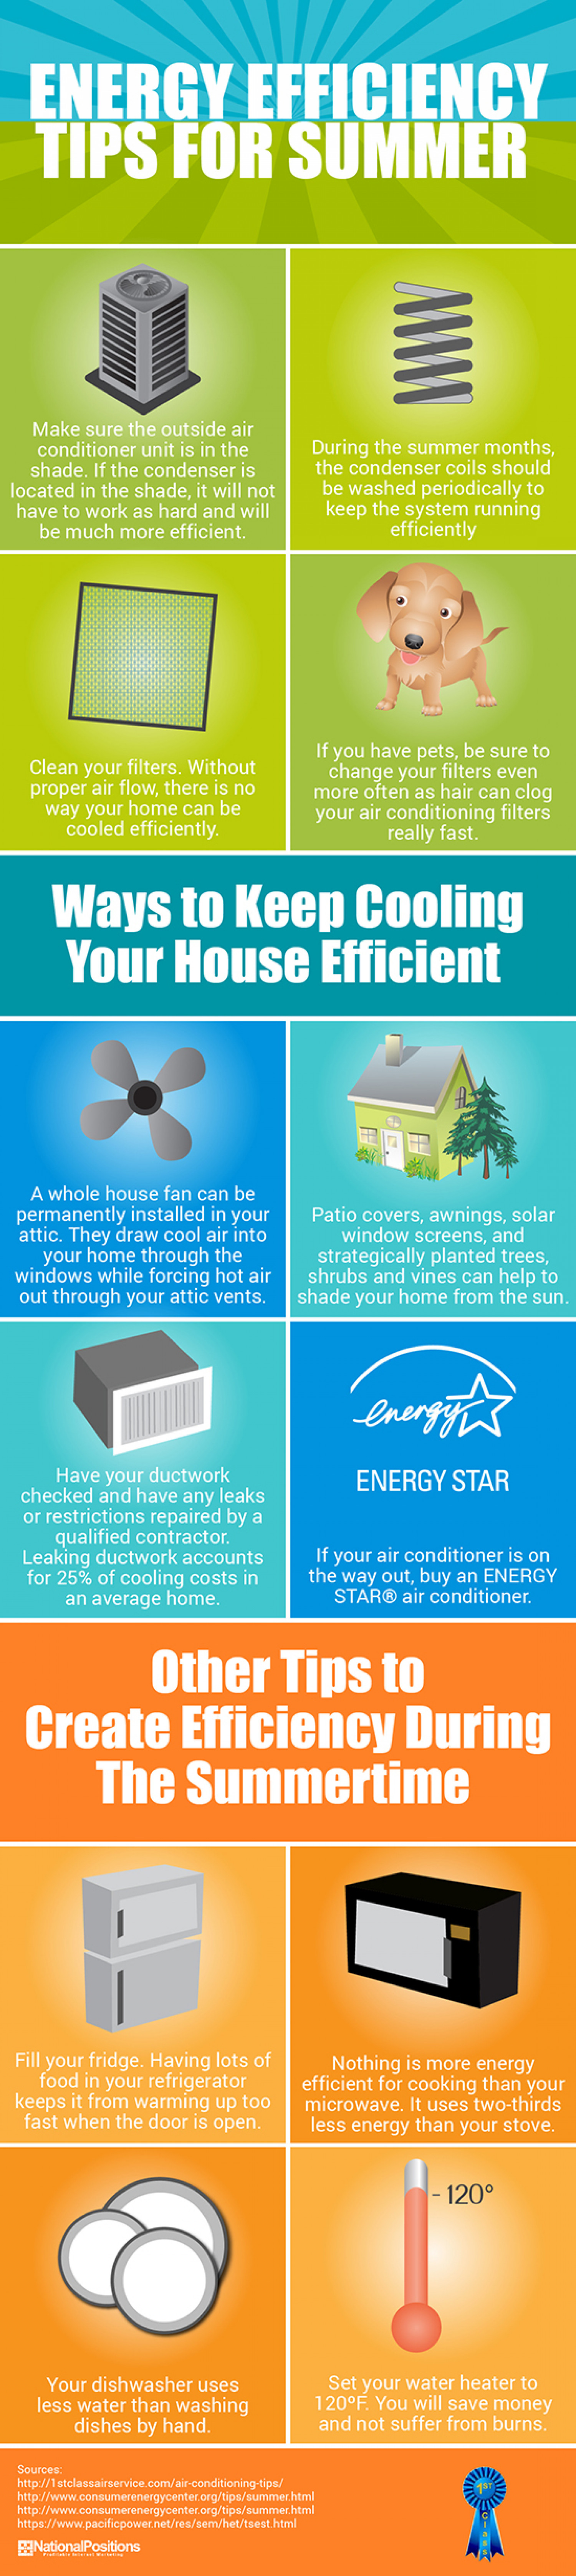 Energy Efficiency Tips For Summer